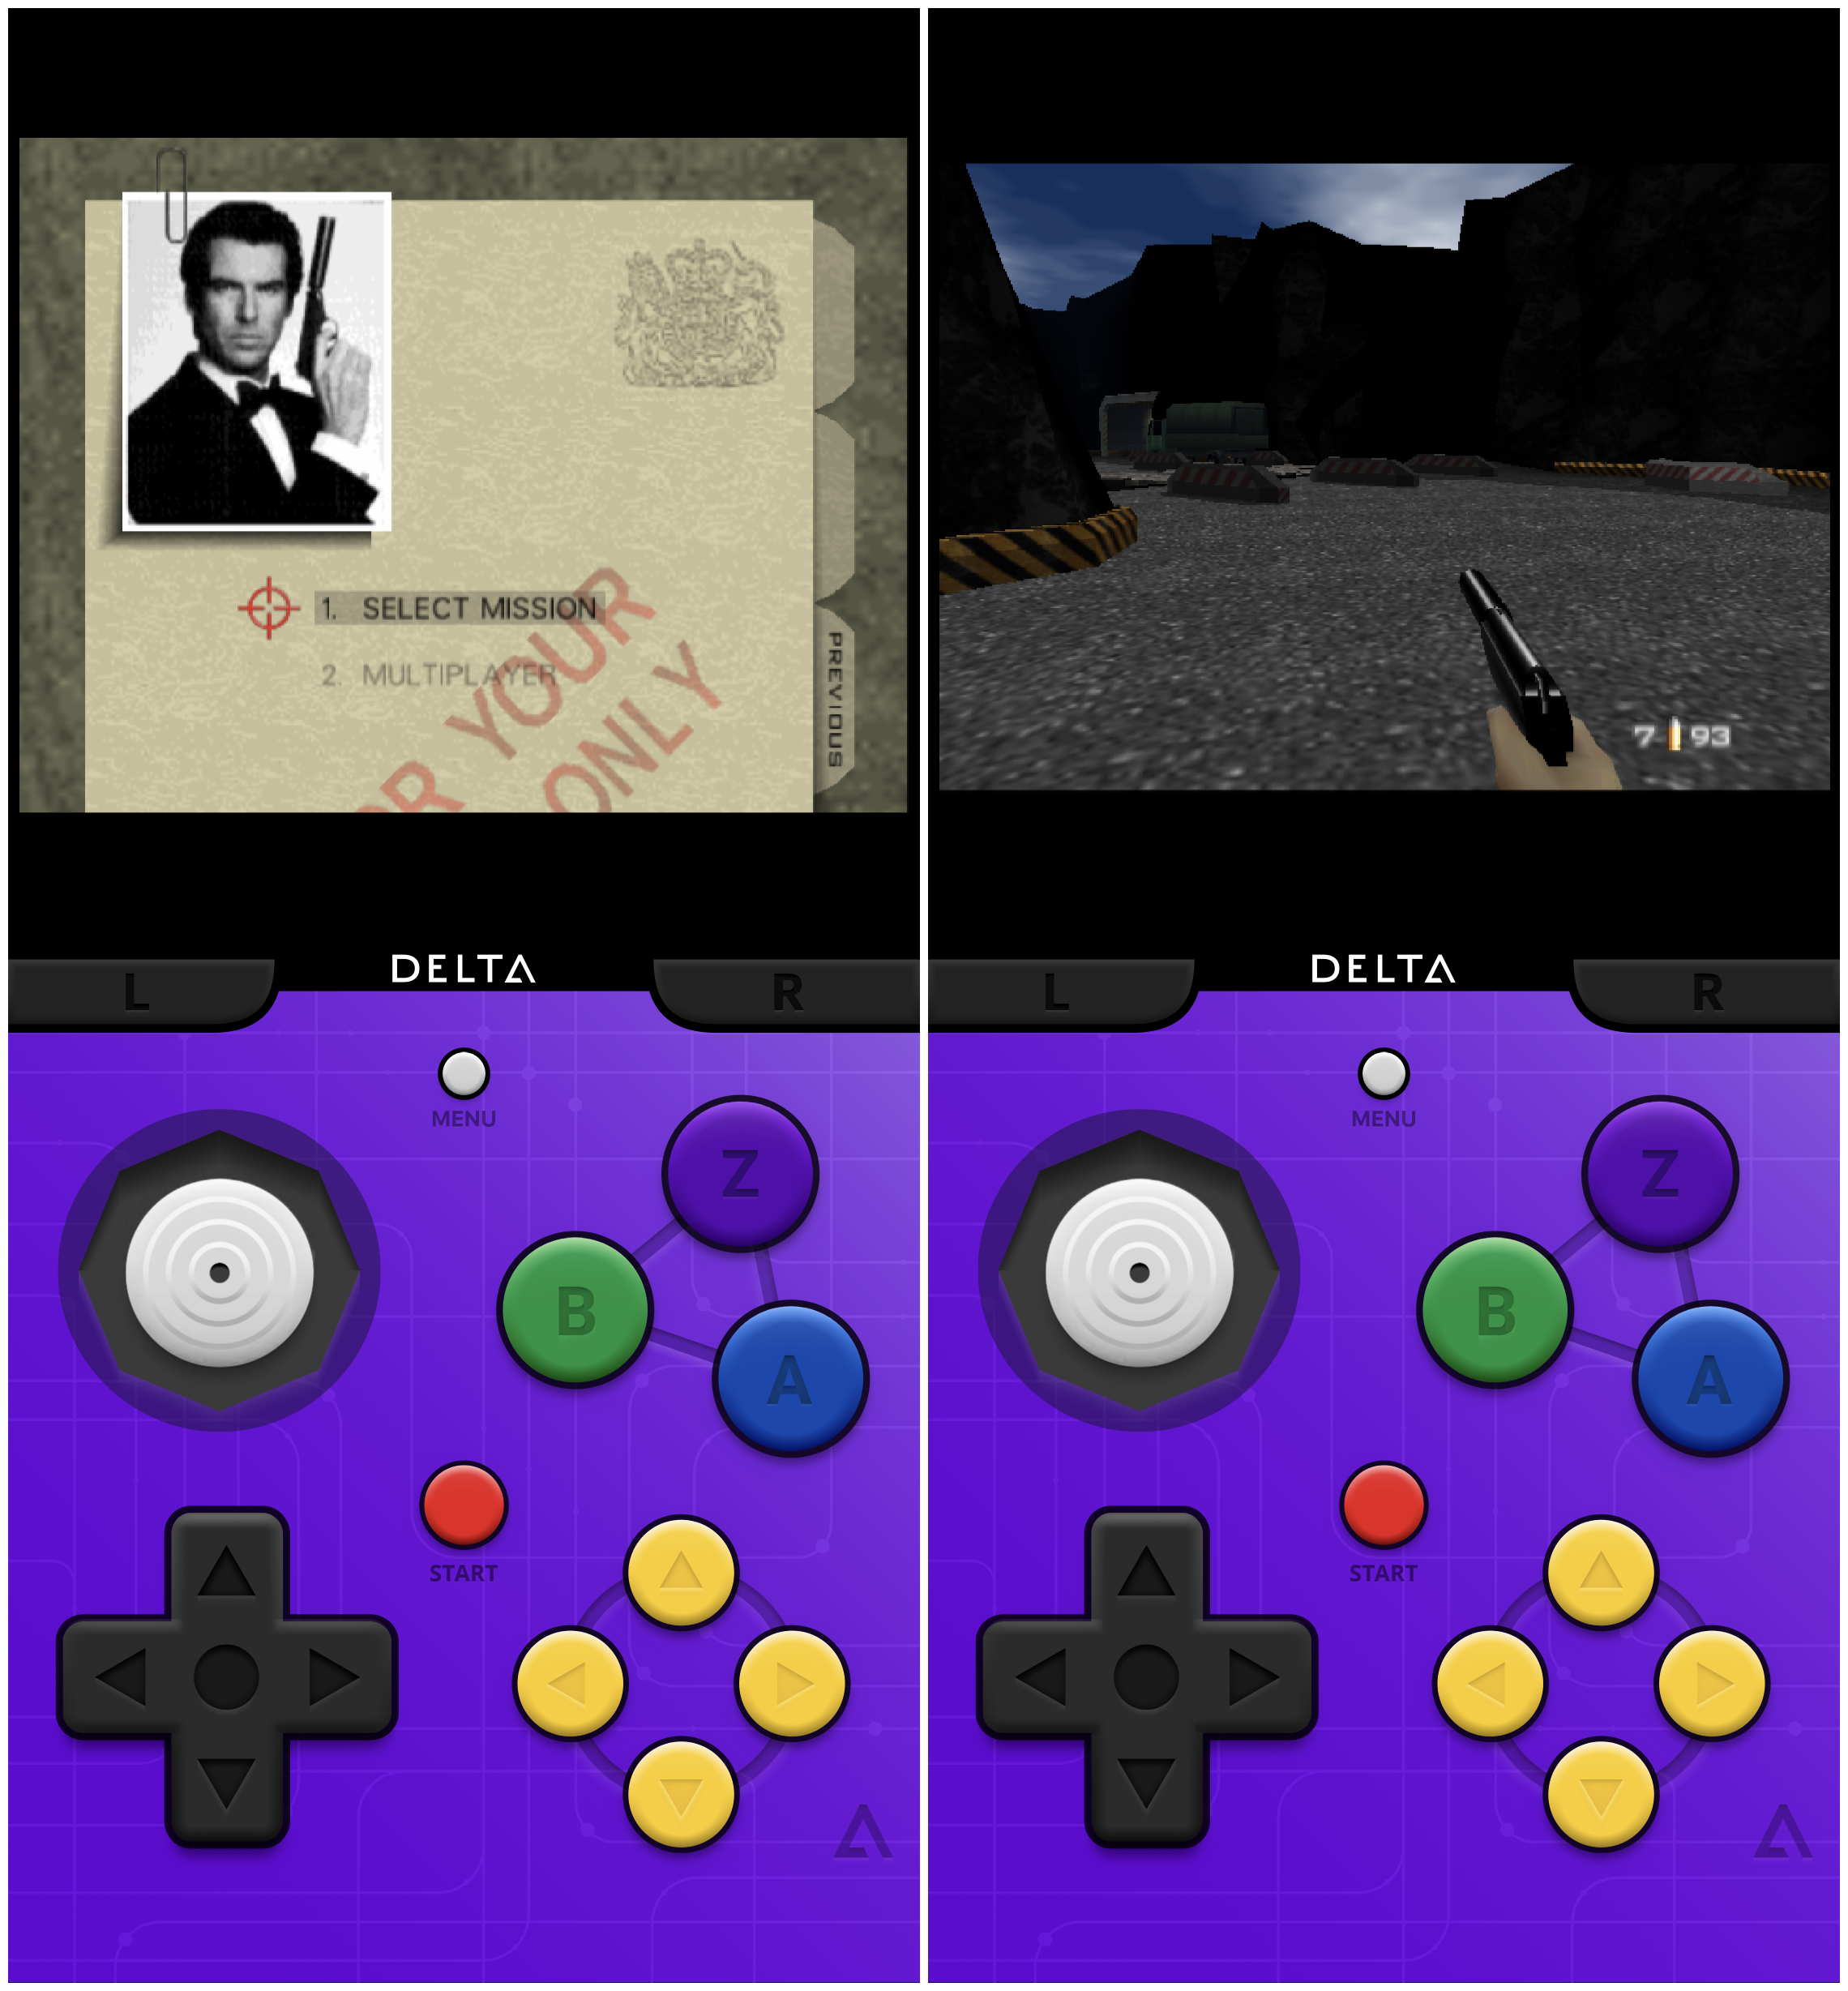 Delta emulator updated to Beta 8, now with Nintendo 64 support